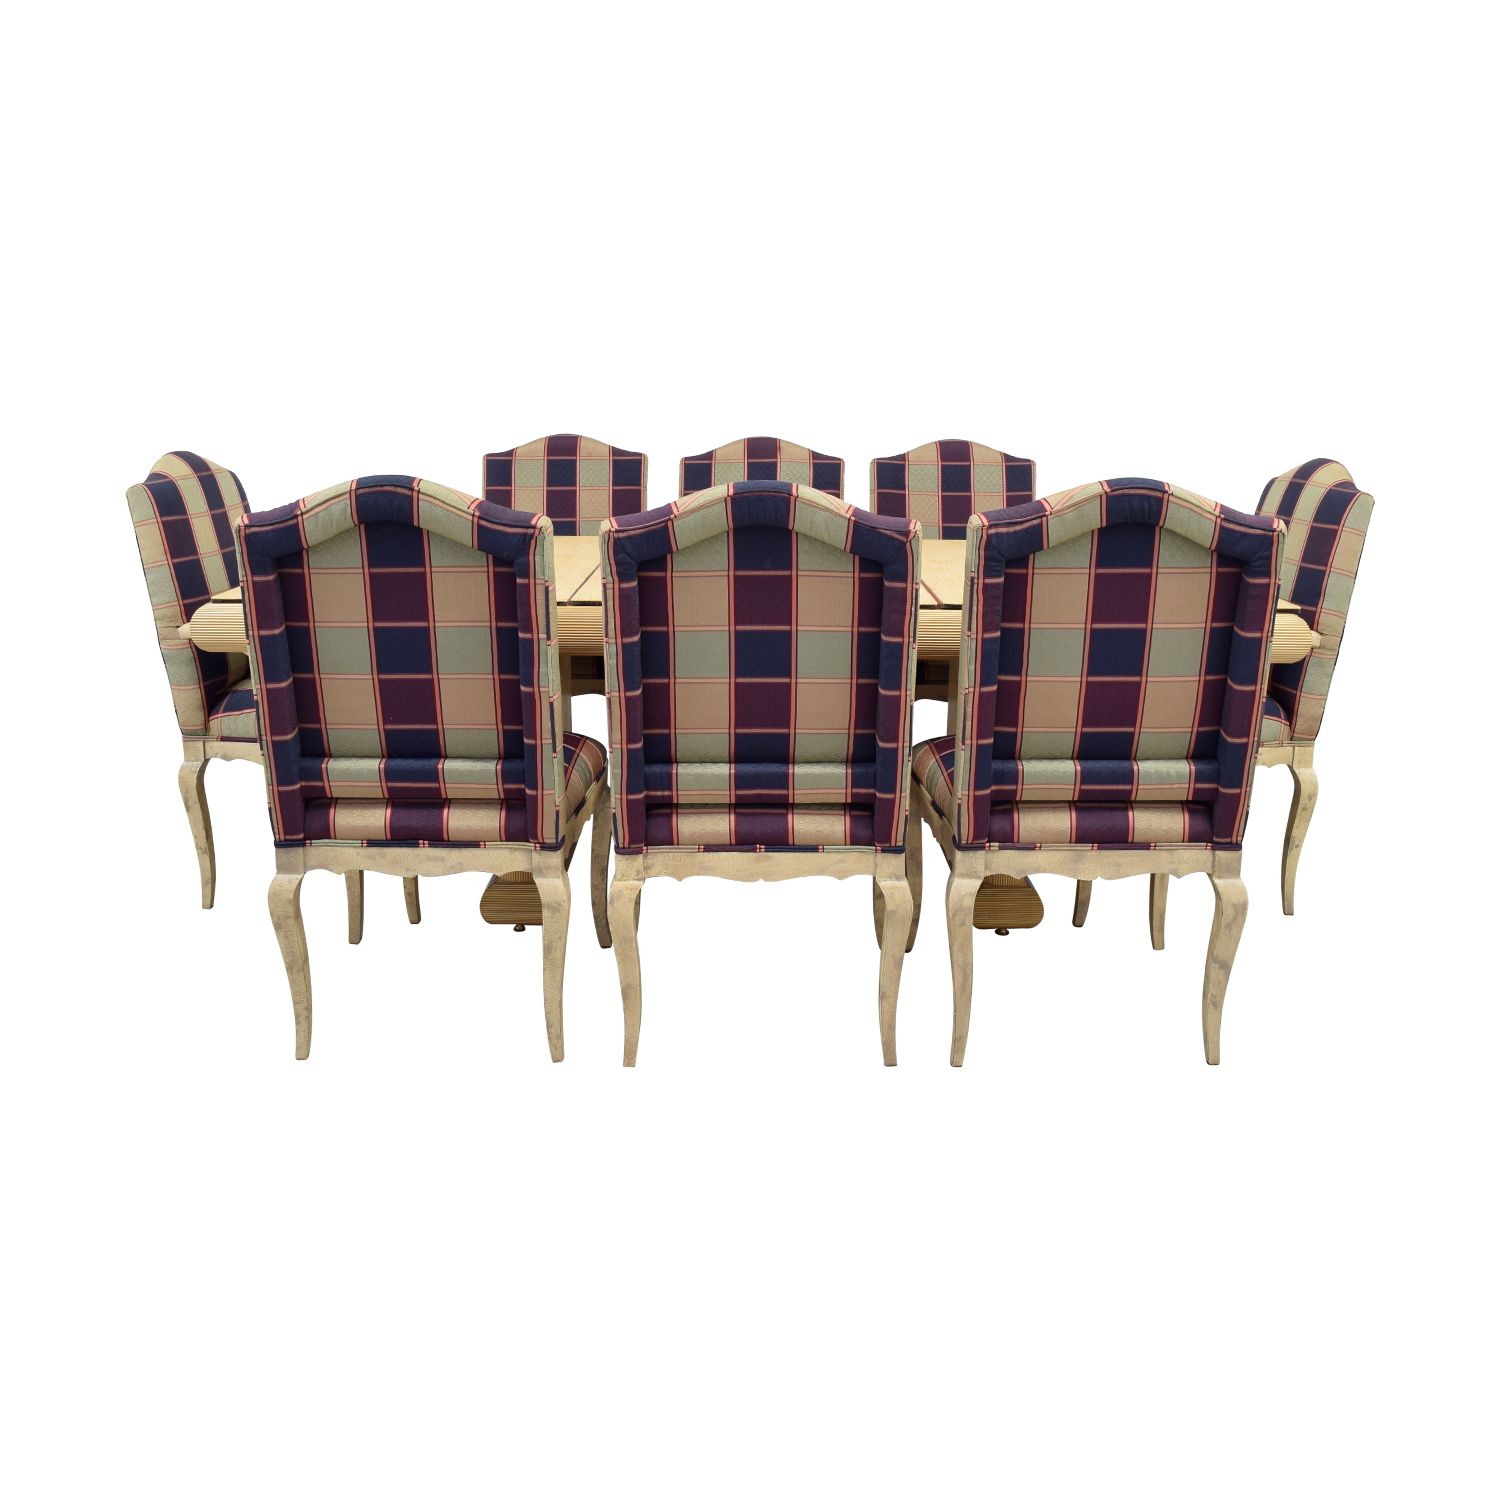 Custom Dining Set with Plaid Chairs price